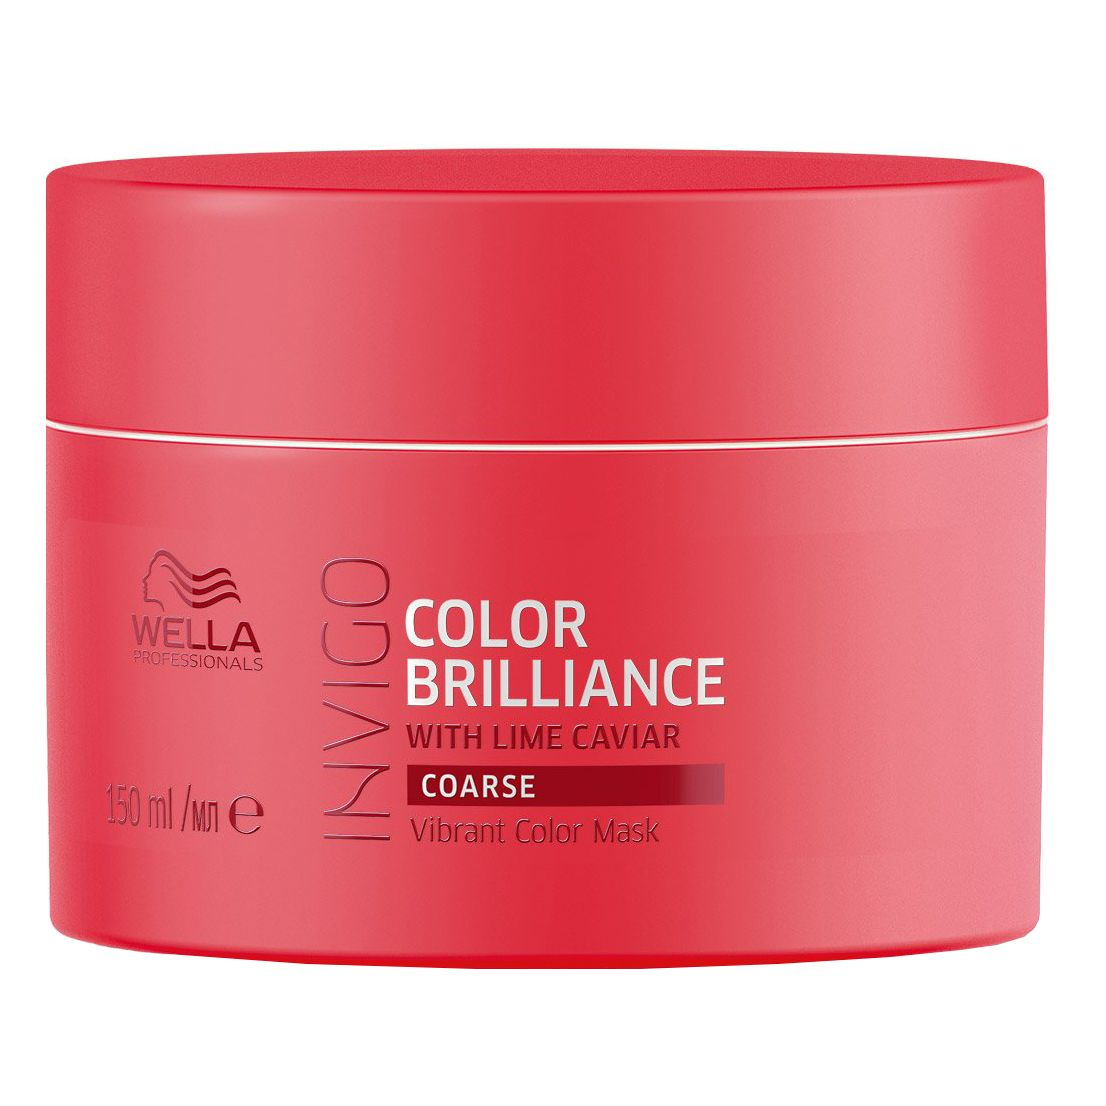 Masca pentru par vopsit Invigo Color Brilliance Coarse, 150 ml, Wella Professionals